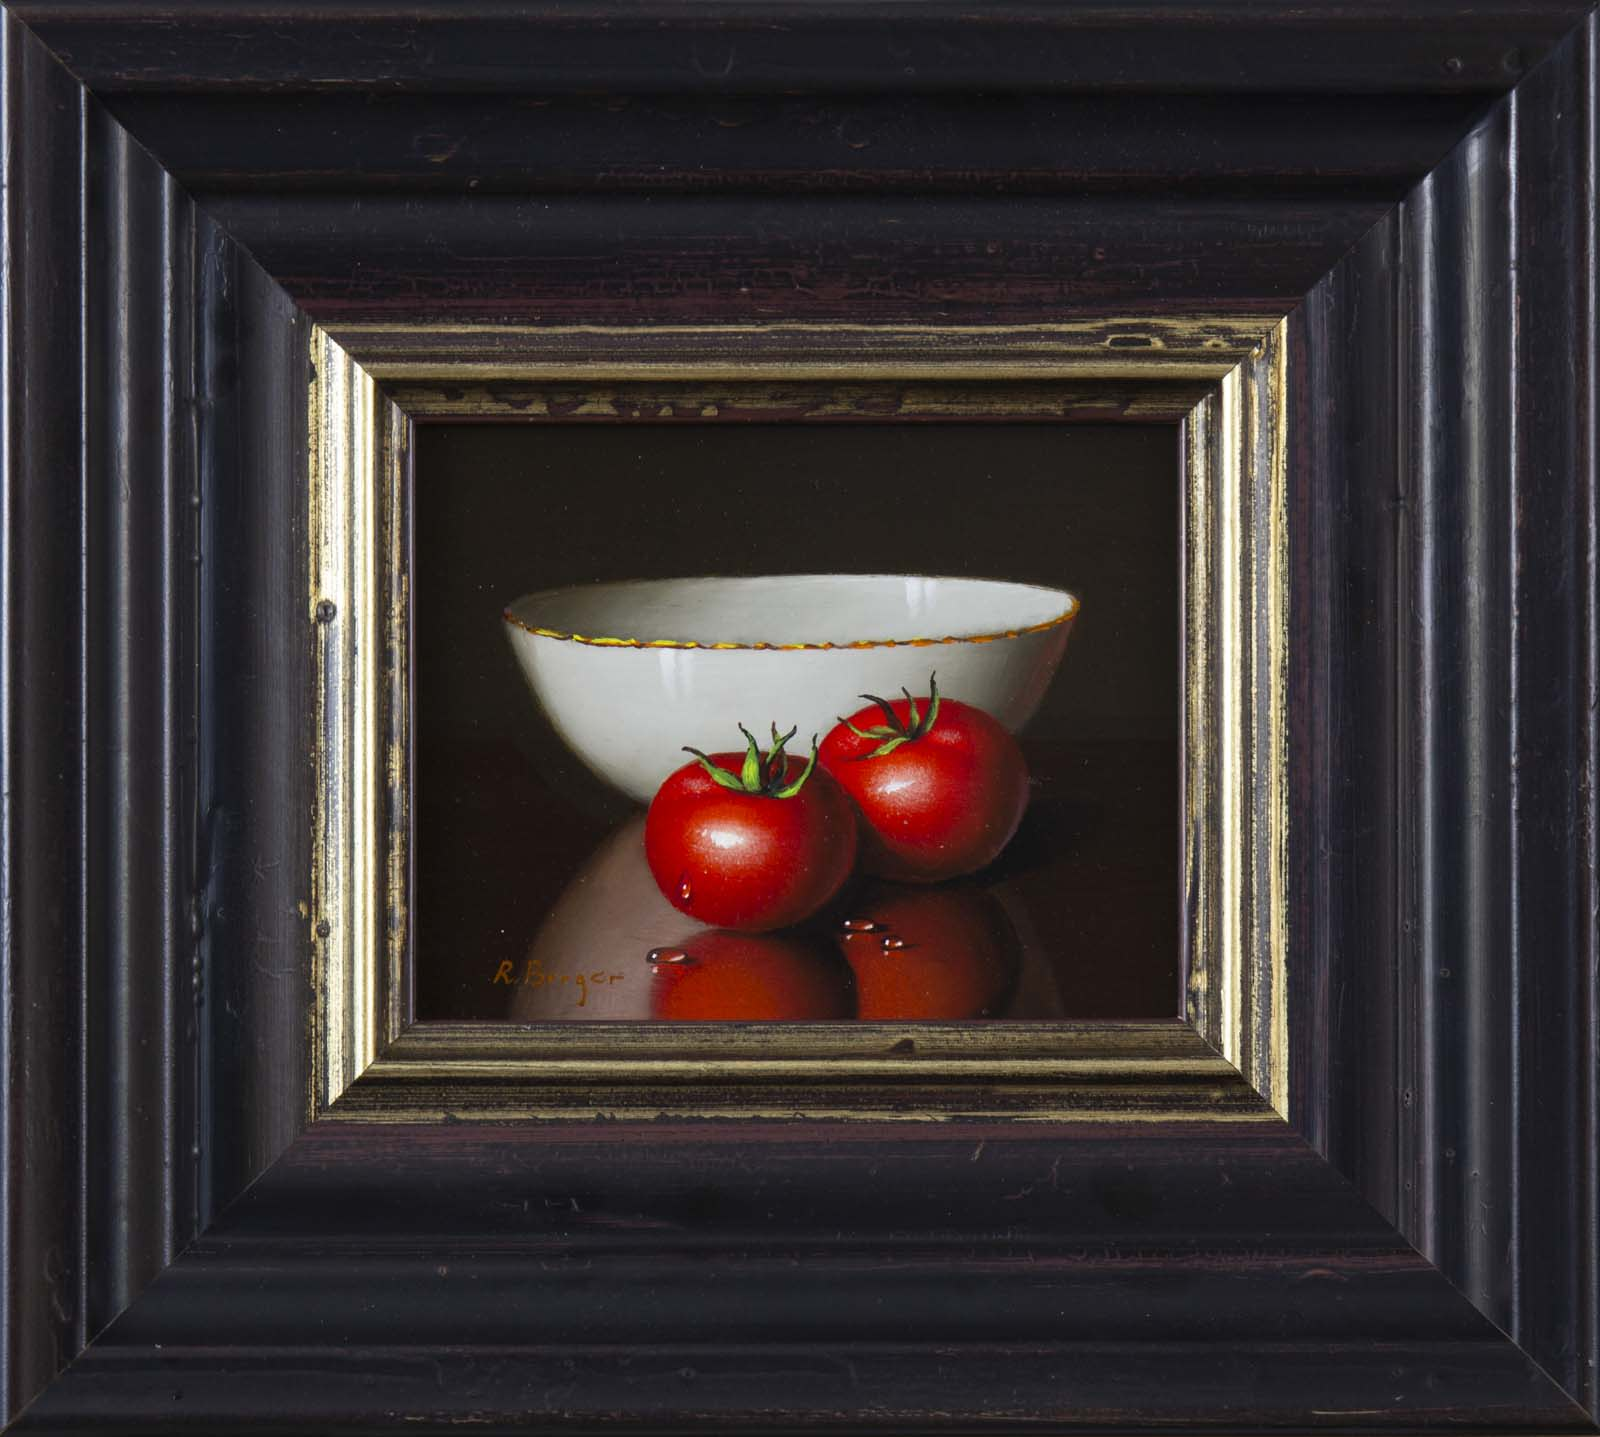 Two Tomatoes, Ronald Berger